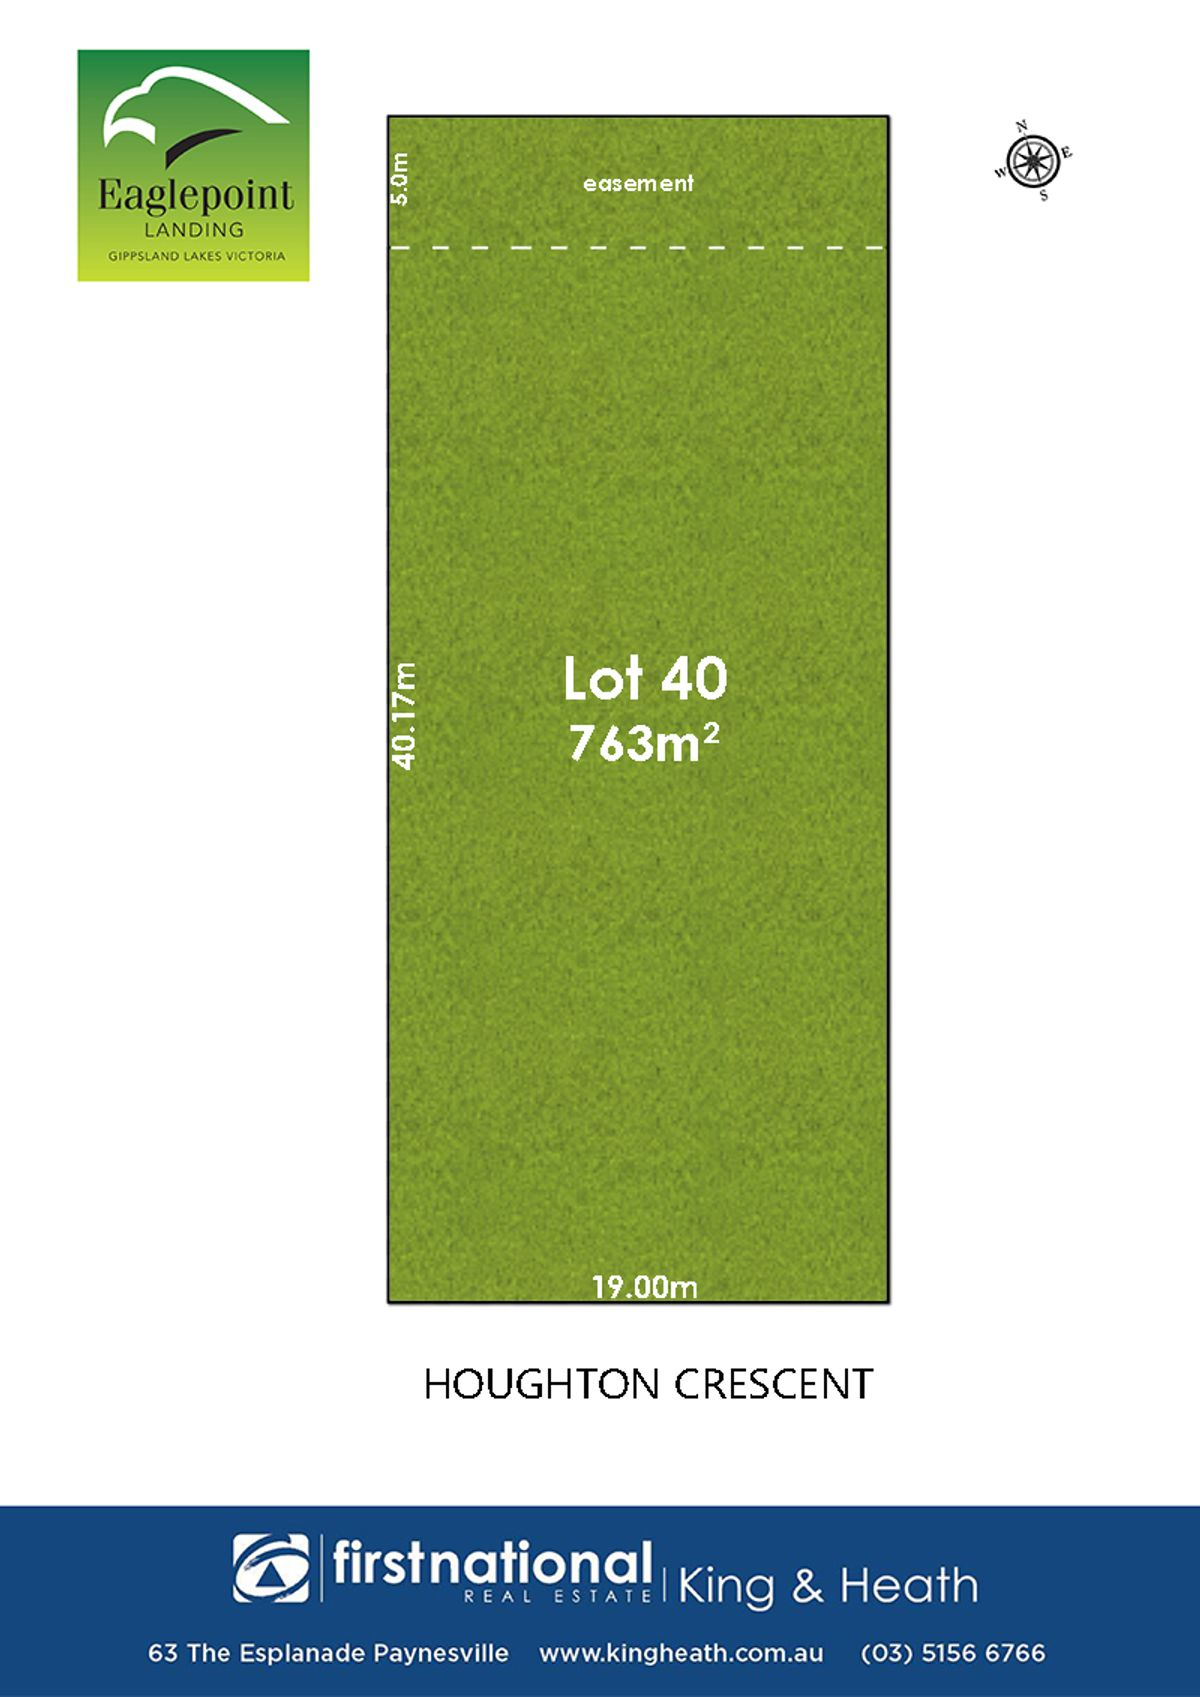 Lot 40 Houghton Crescent, Eagle Point, VIC 3878